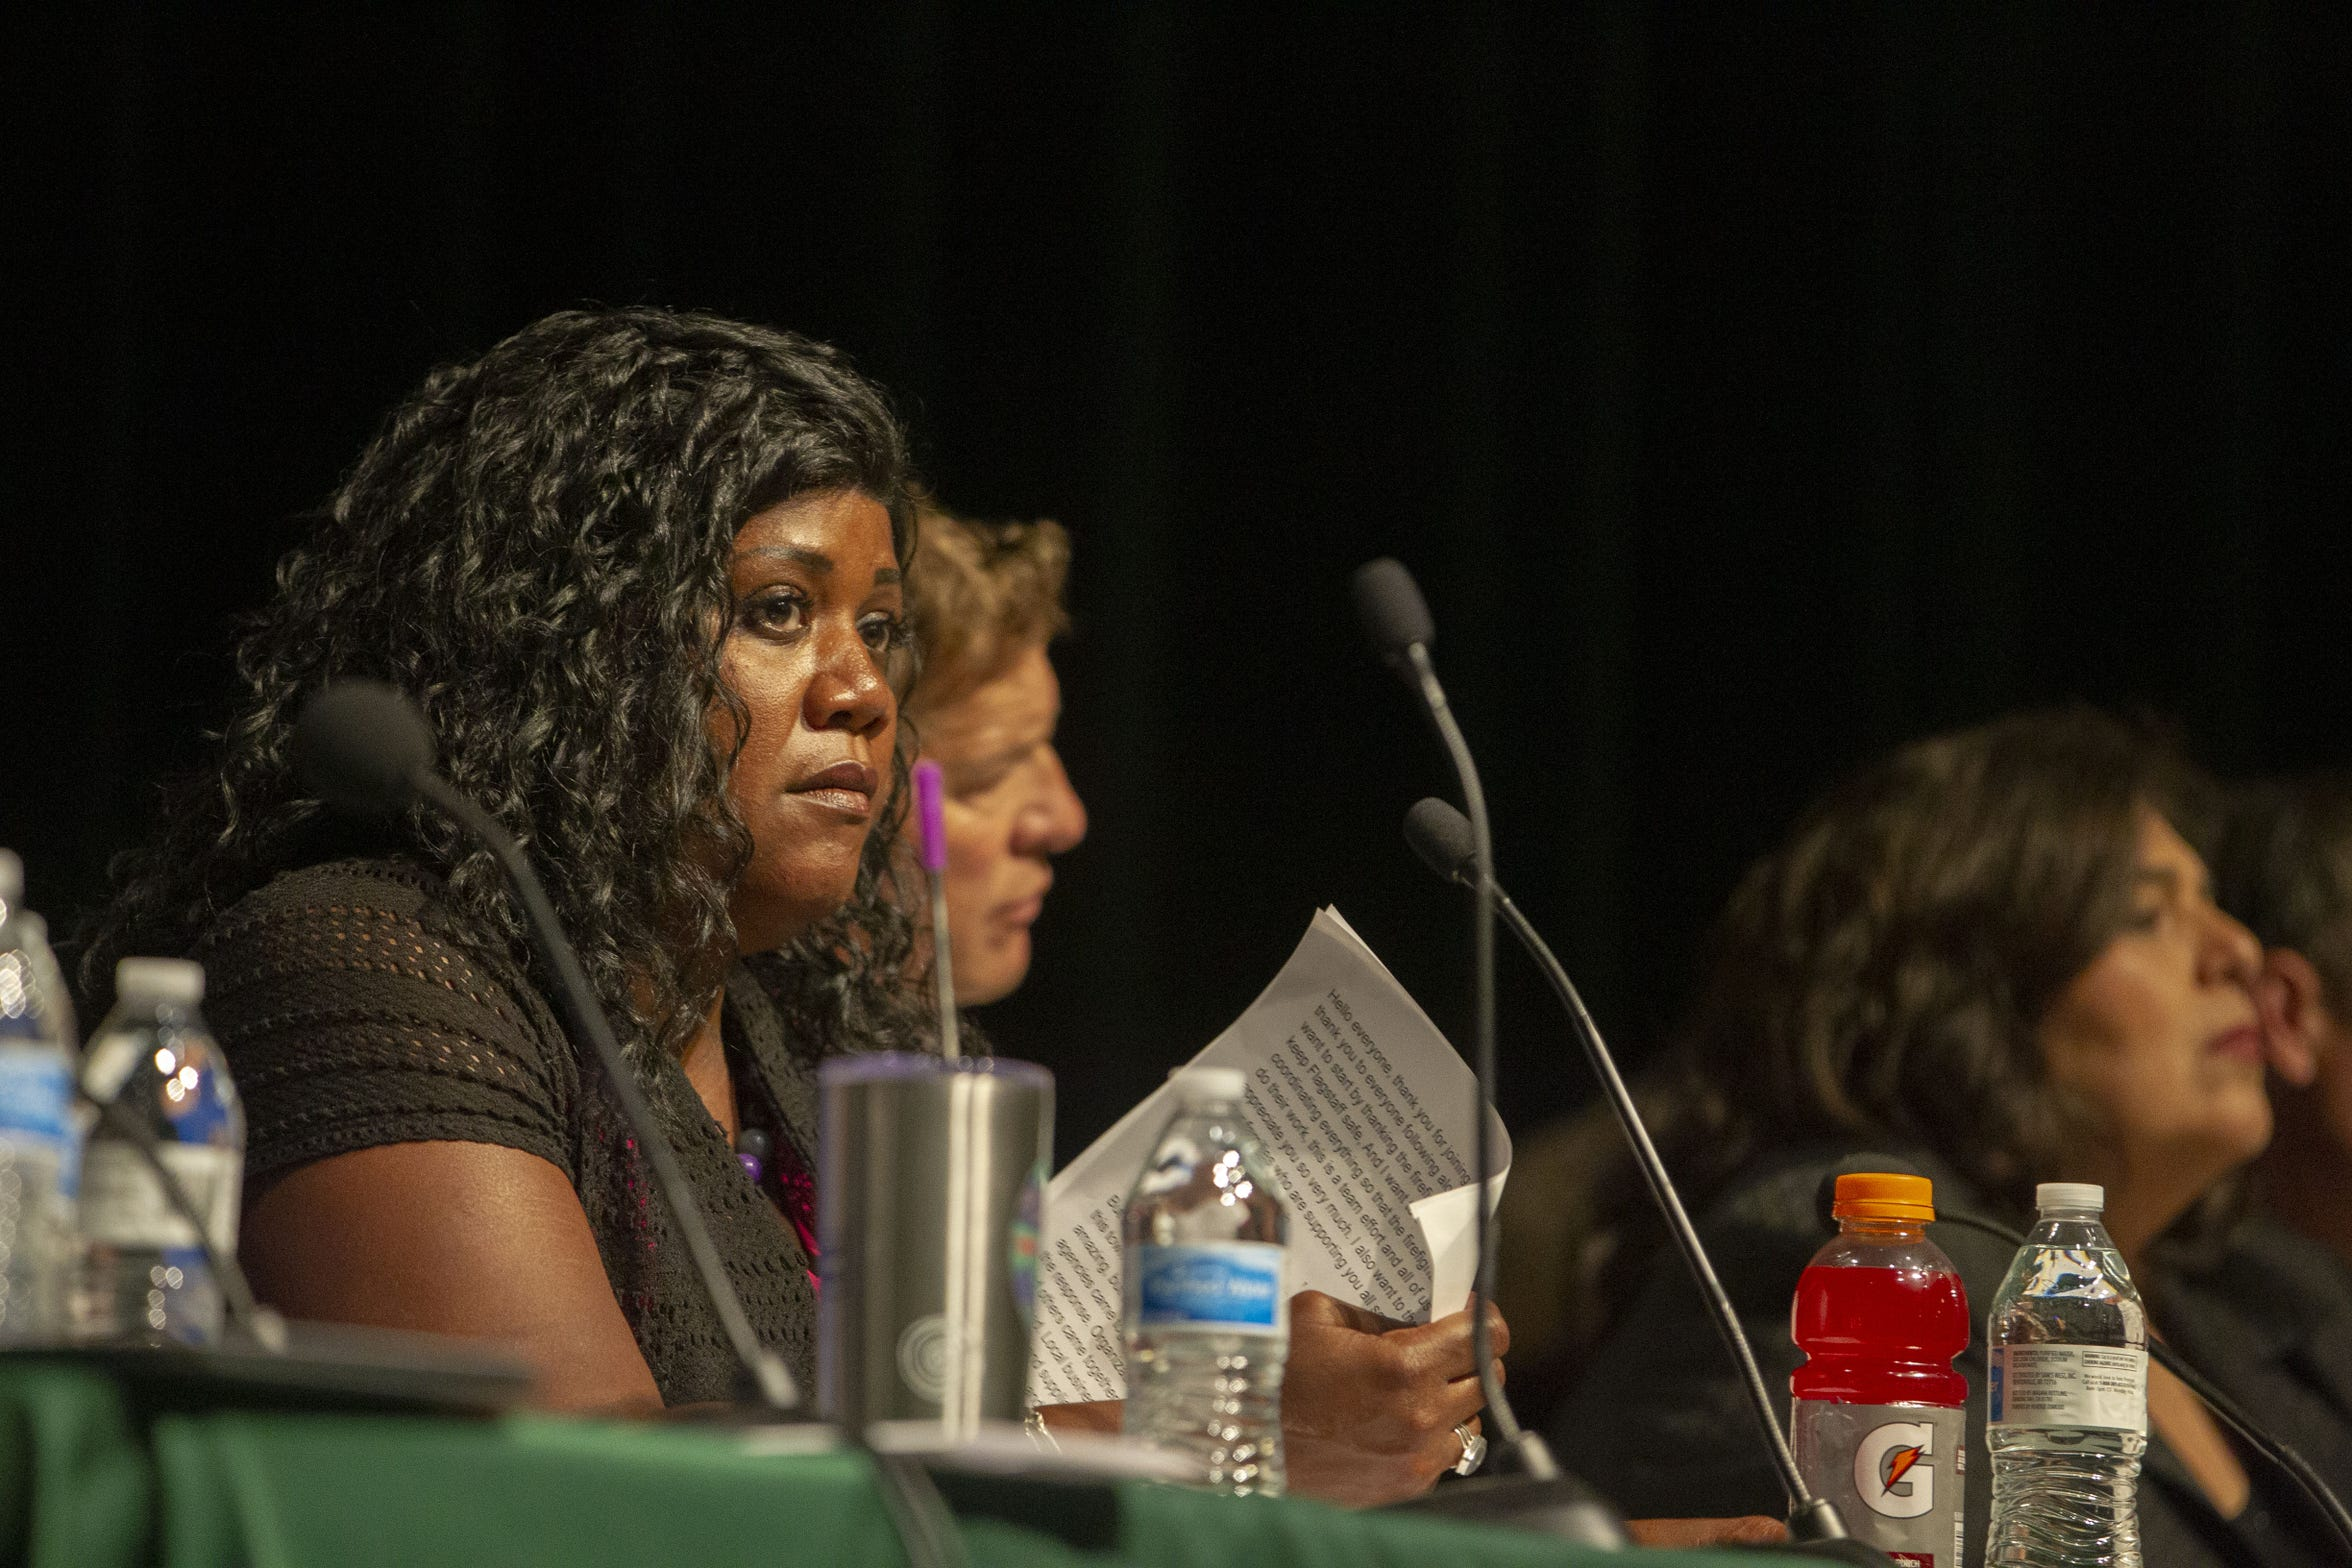 Flagstaff Mayor Coral Evans listens to a member of the audience share their concerns at a town meeting.